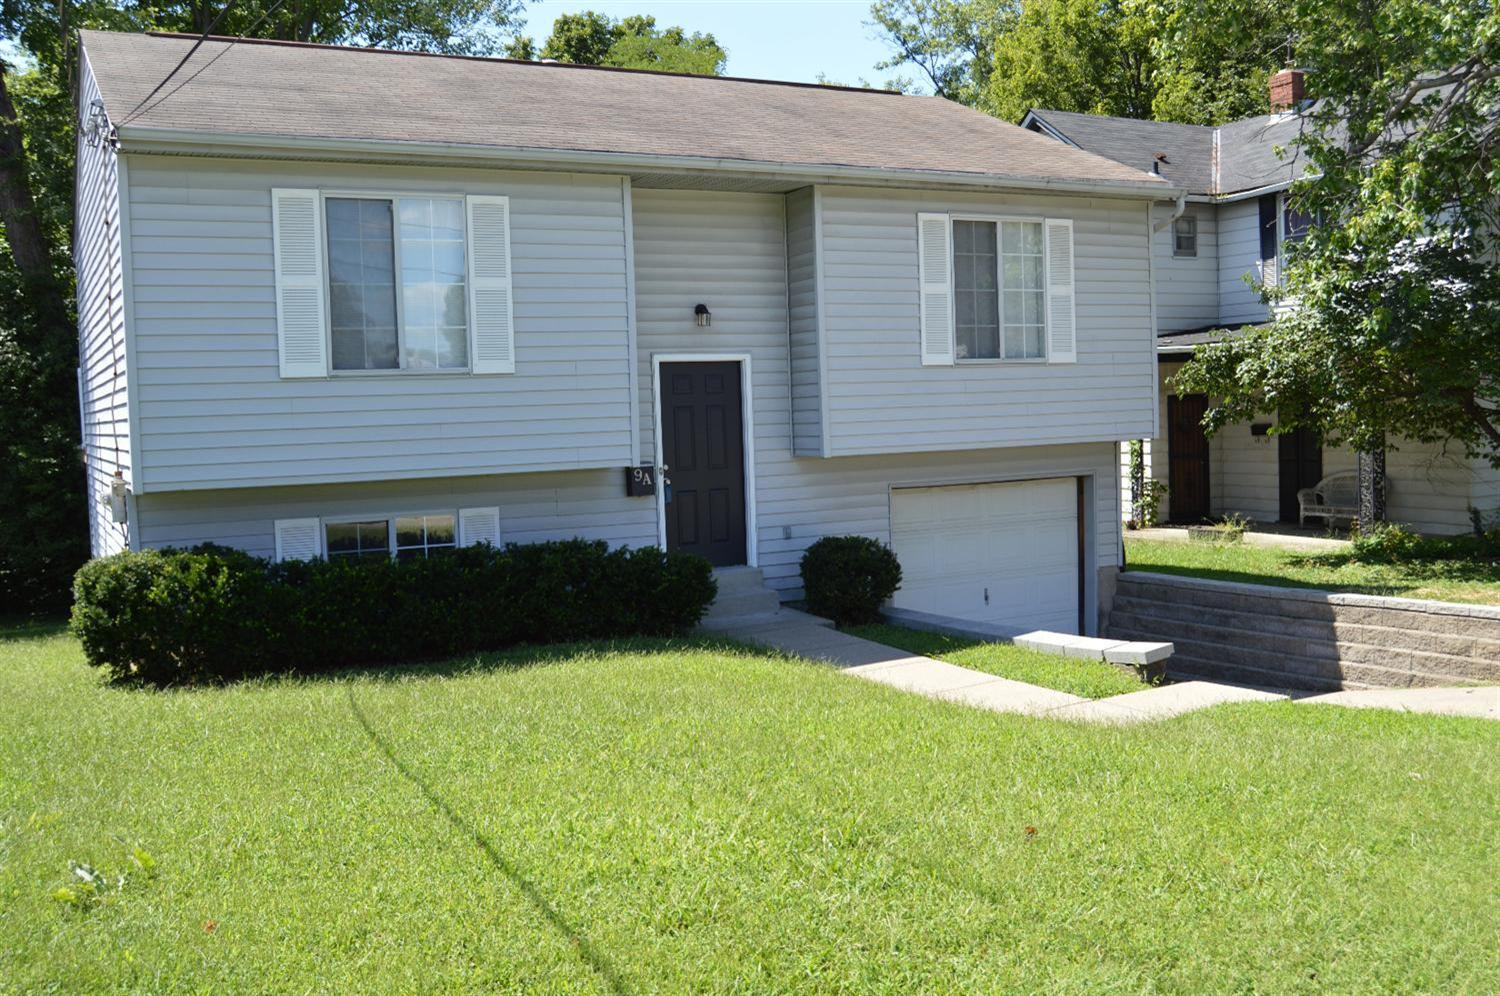 real estate photo 1 for 9 Lexington Ave, A Florence, KY 41042